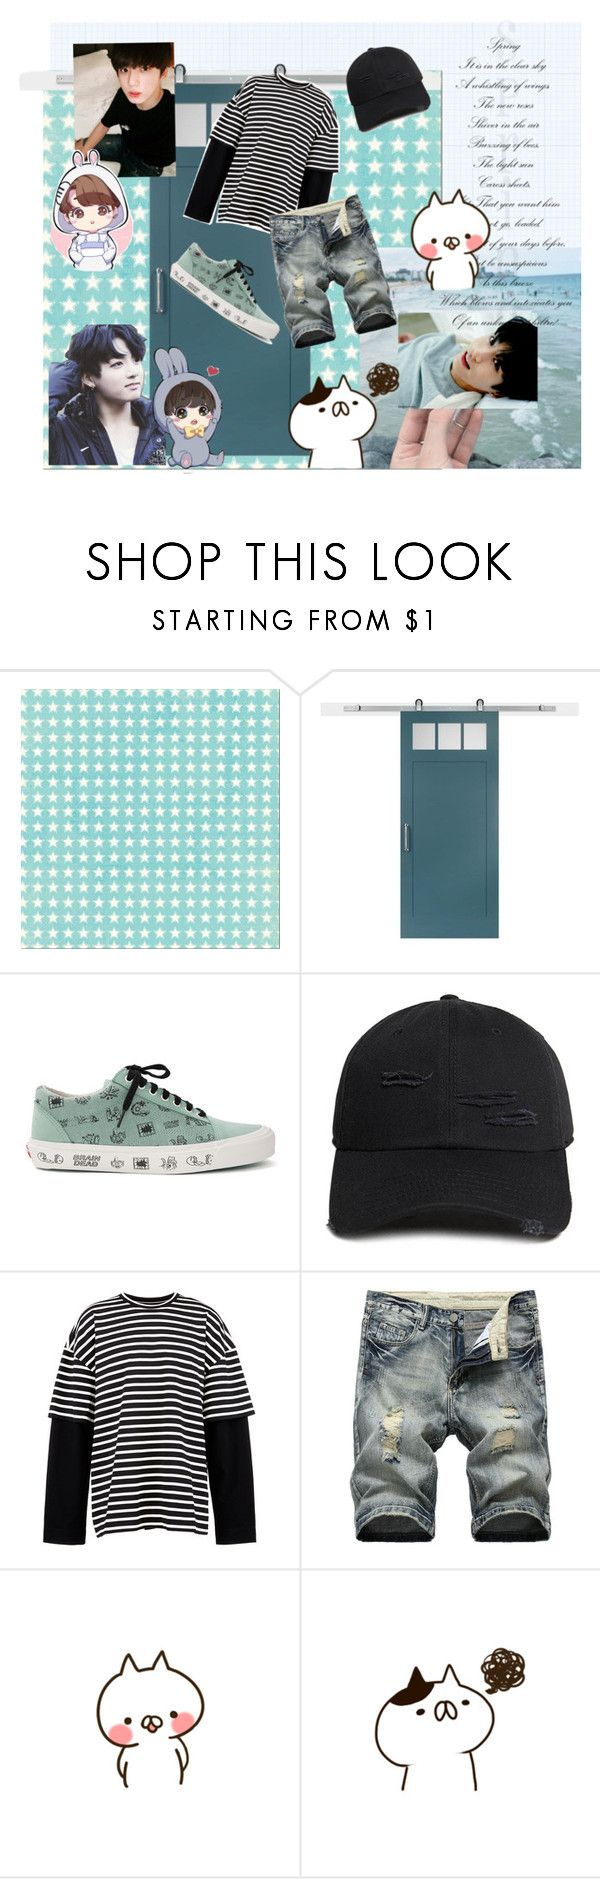 """""""Outfit of Jungkook Boyfriend"""" by gmoa123 ❤ liked on Polyvore featuring Craftsman, Vans, 21 Men, Juun.j, GET LOST, men's fashion and menswear"""